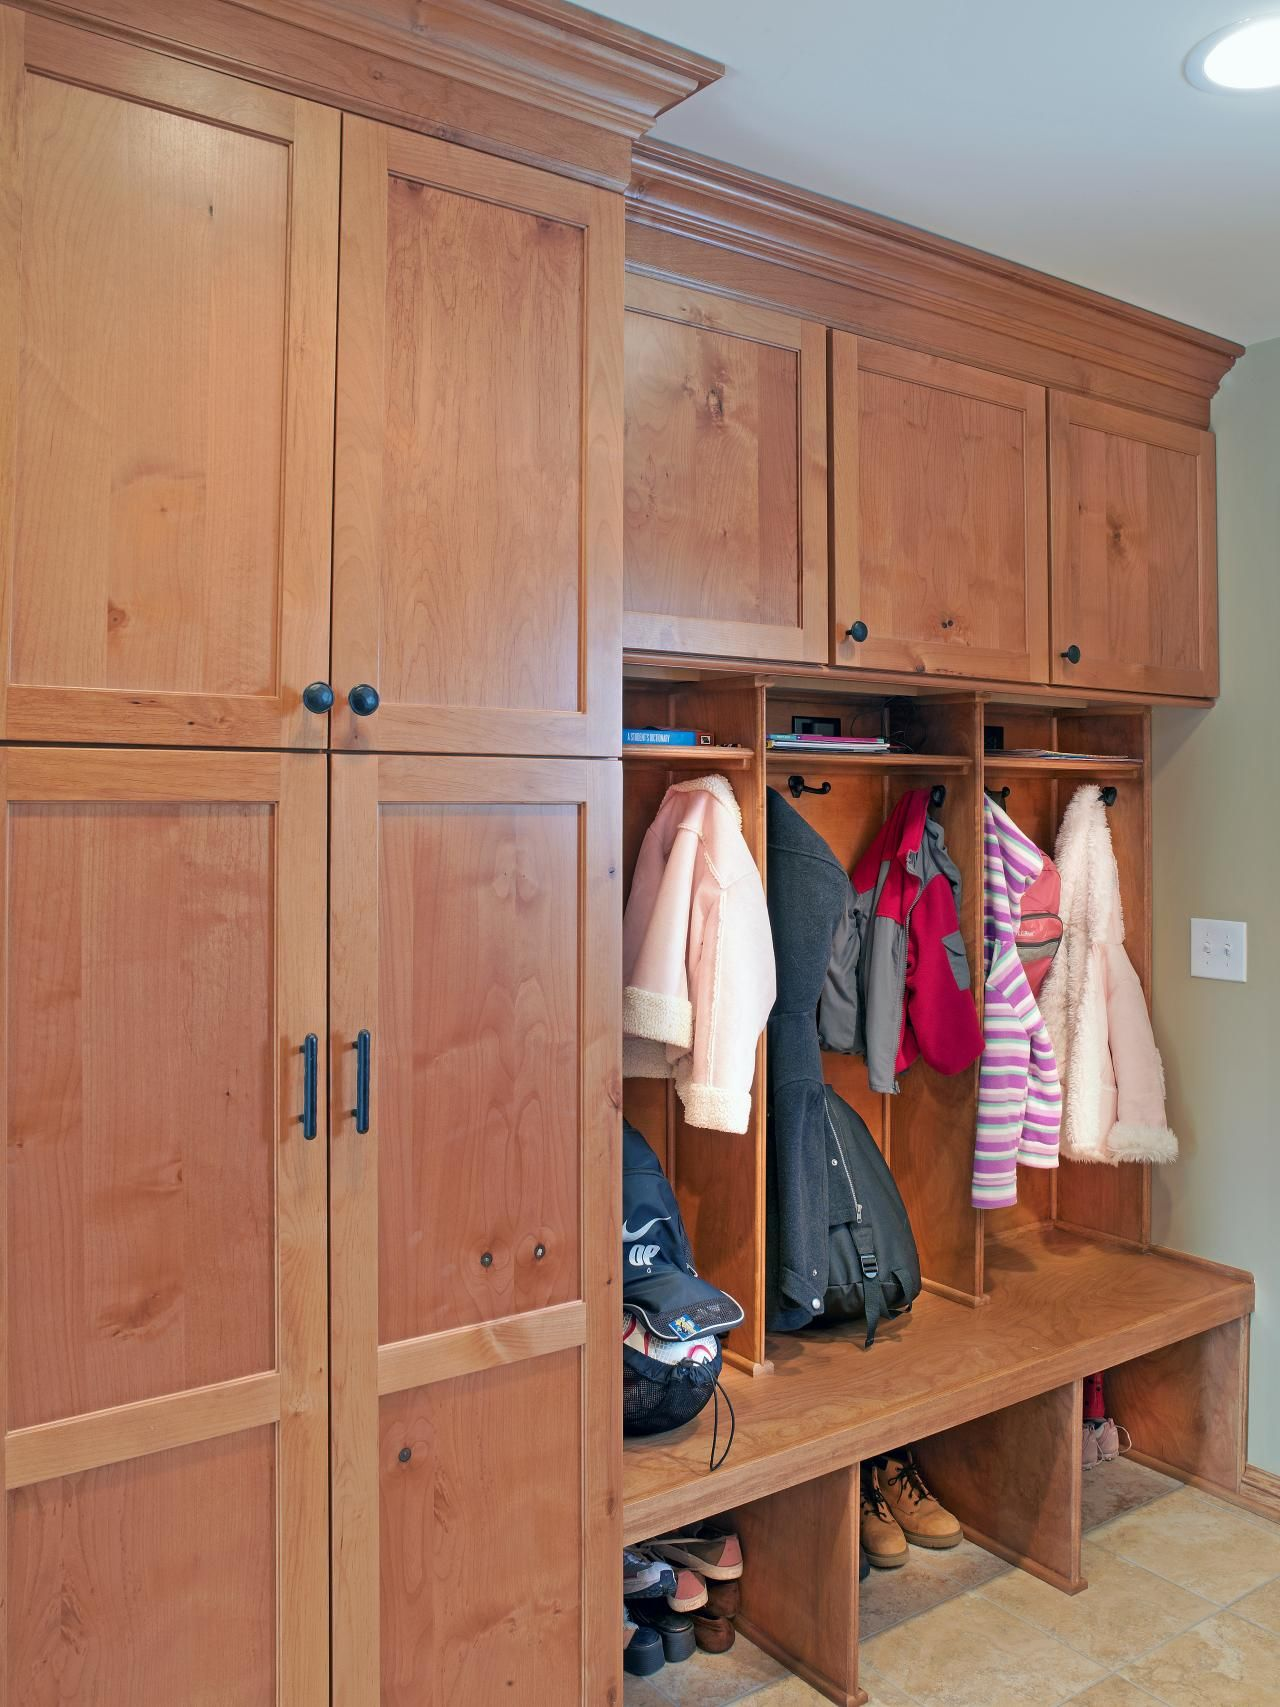 Marvelous Mudroom Closet Organization Ideas With Wooden Storage Lockers And Shelves  For Magazines On Top Of The Coat Hanging Hooks. Also Plentyu2026